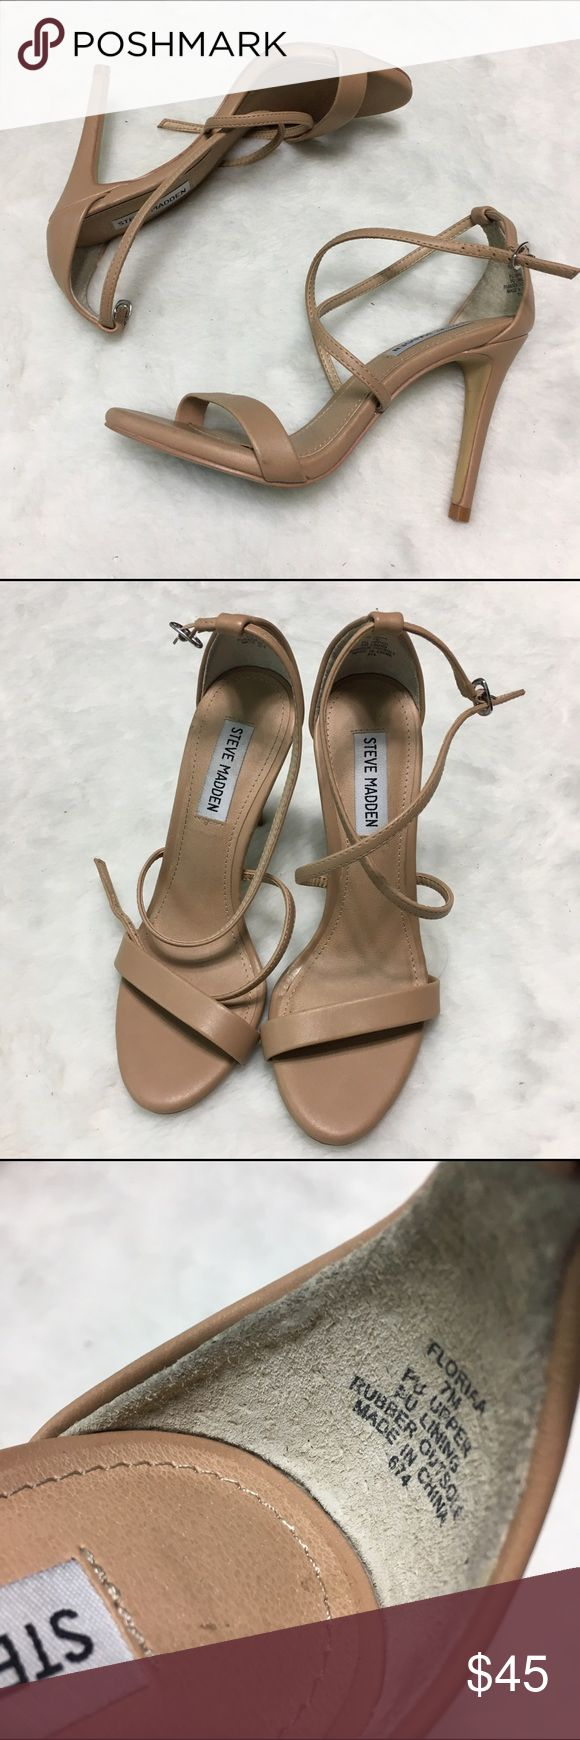 Steve Madden Floriaa nude tan beige strappy heel Does not include the original box. Soft faux leather feel. Steve Madden Shoes Heels